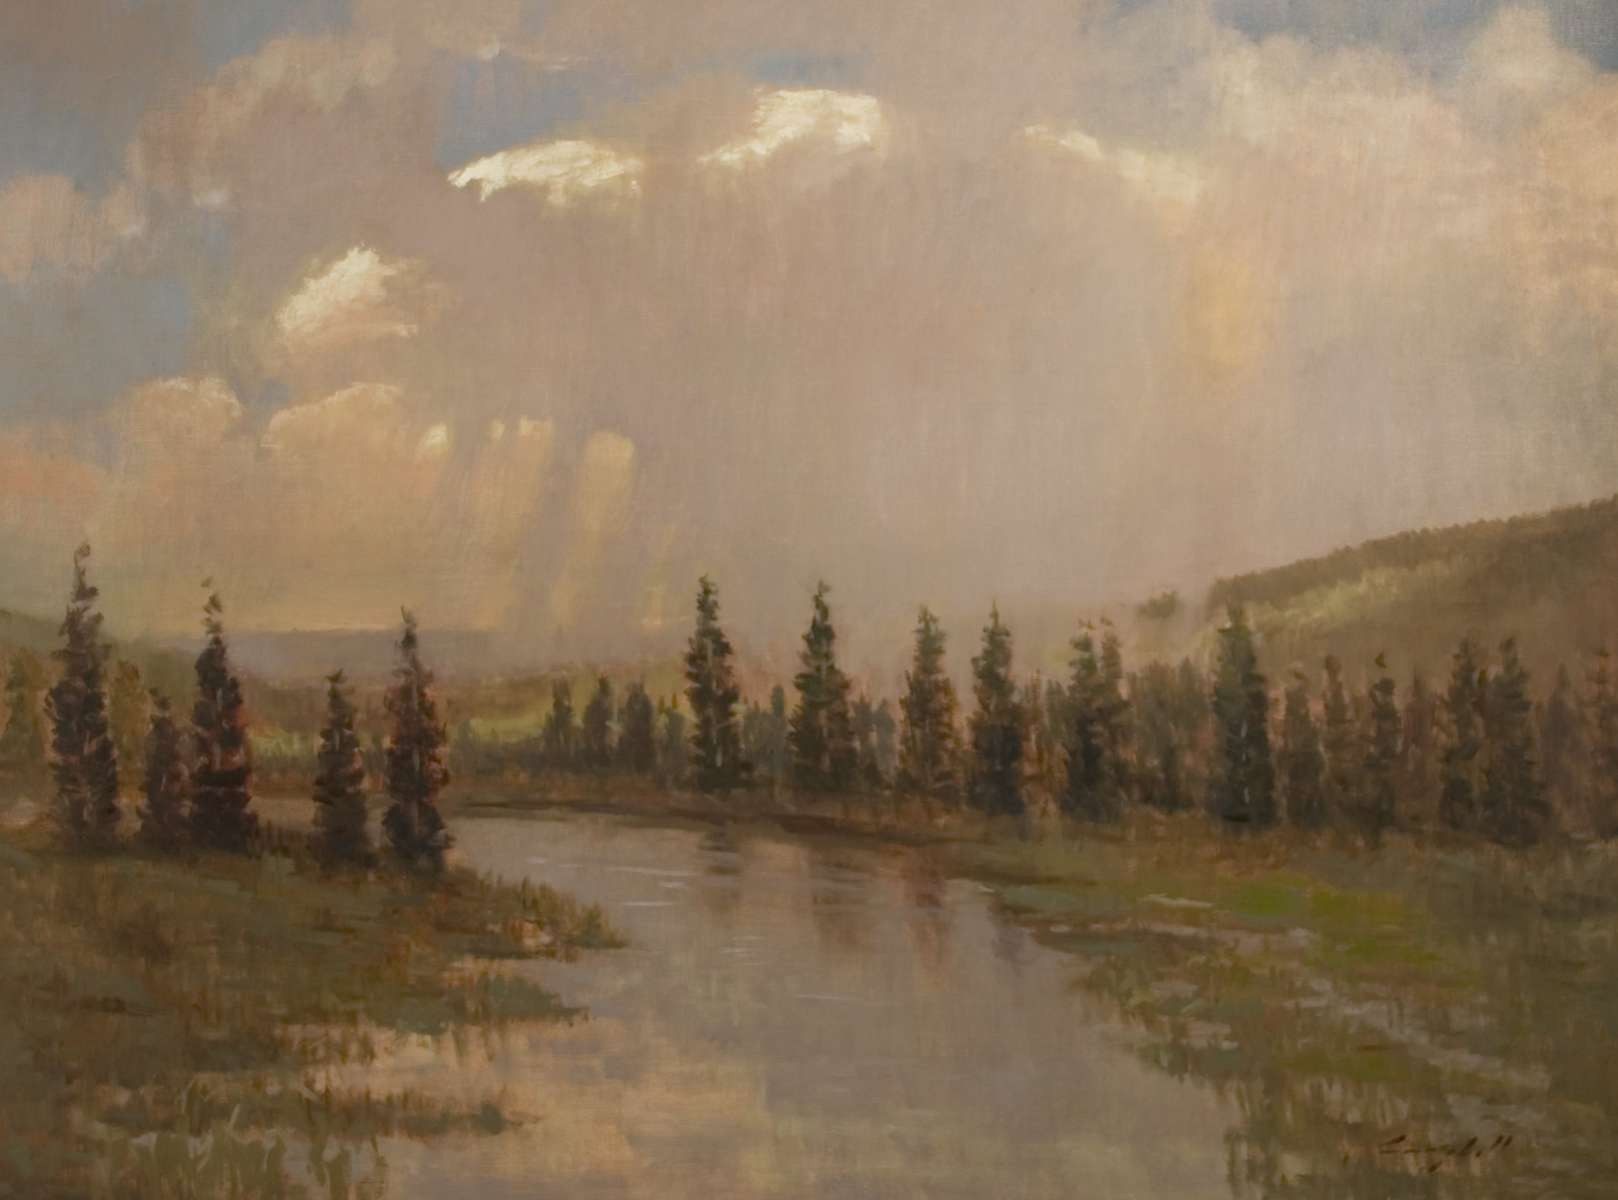 Snake River painting by artist Peter Campbel